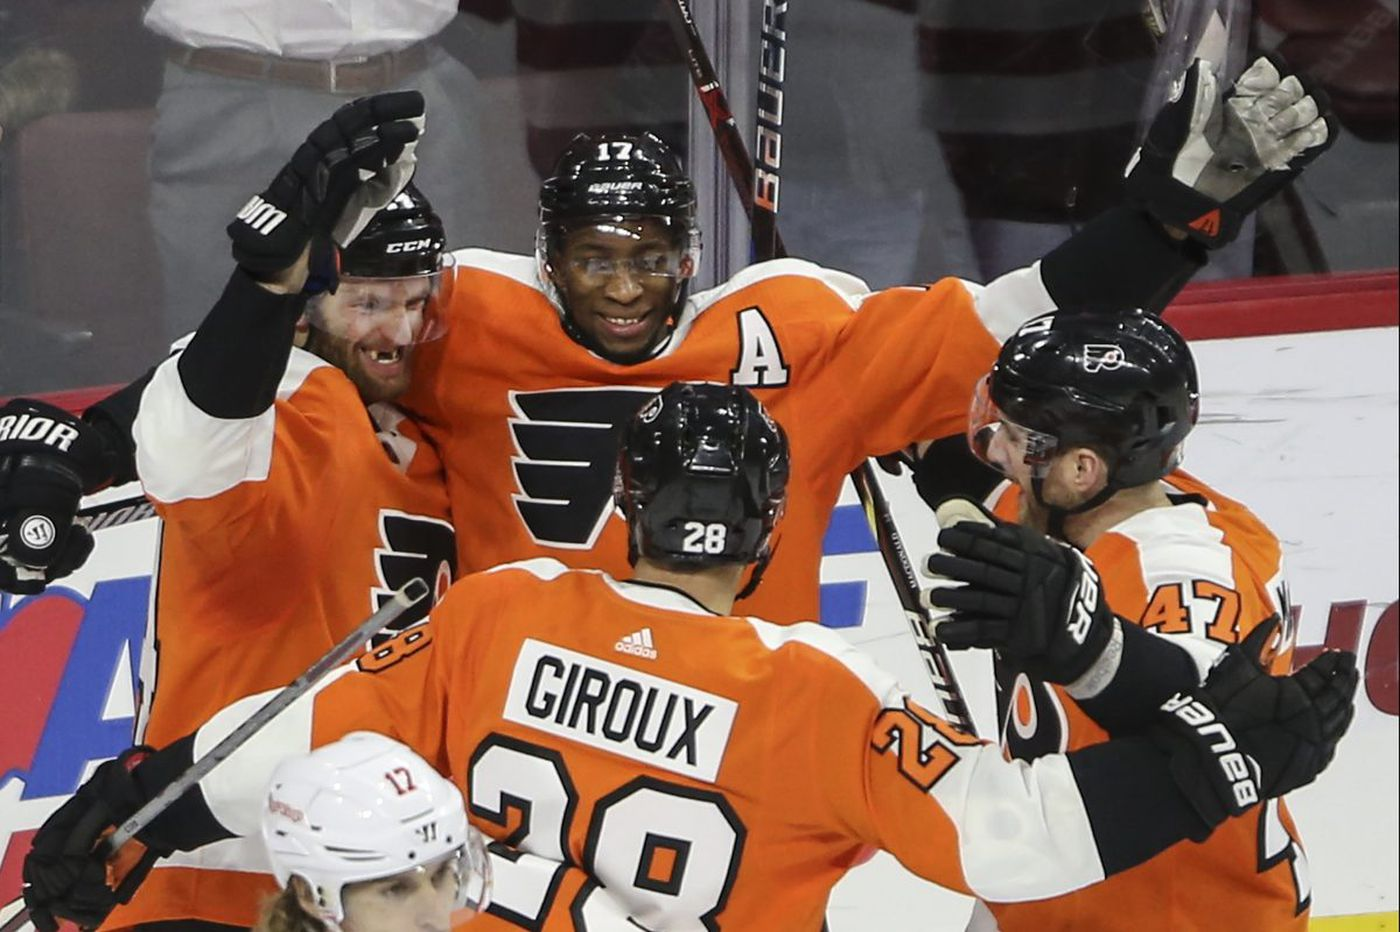 Flyers rally past Detroit, 4-3, as Sean Couturier scores winner